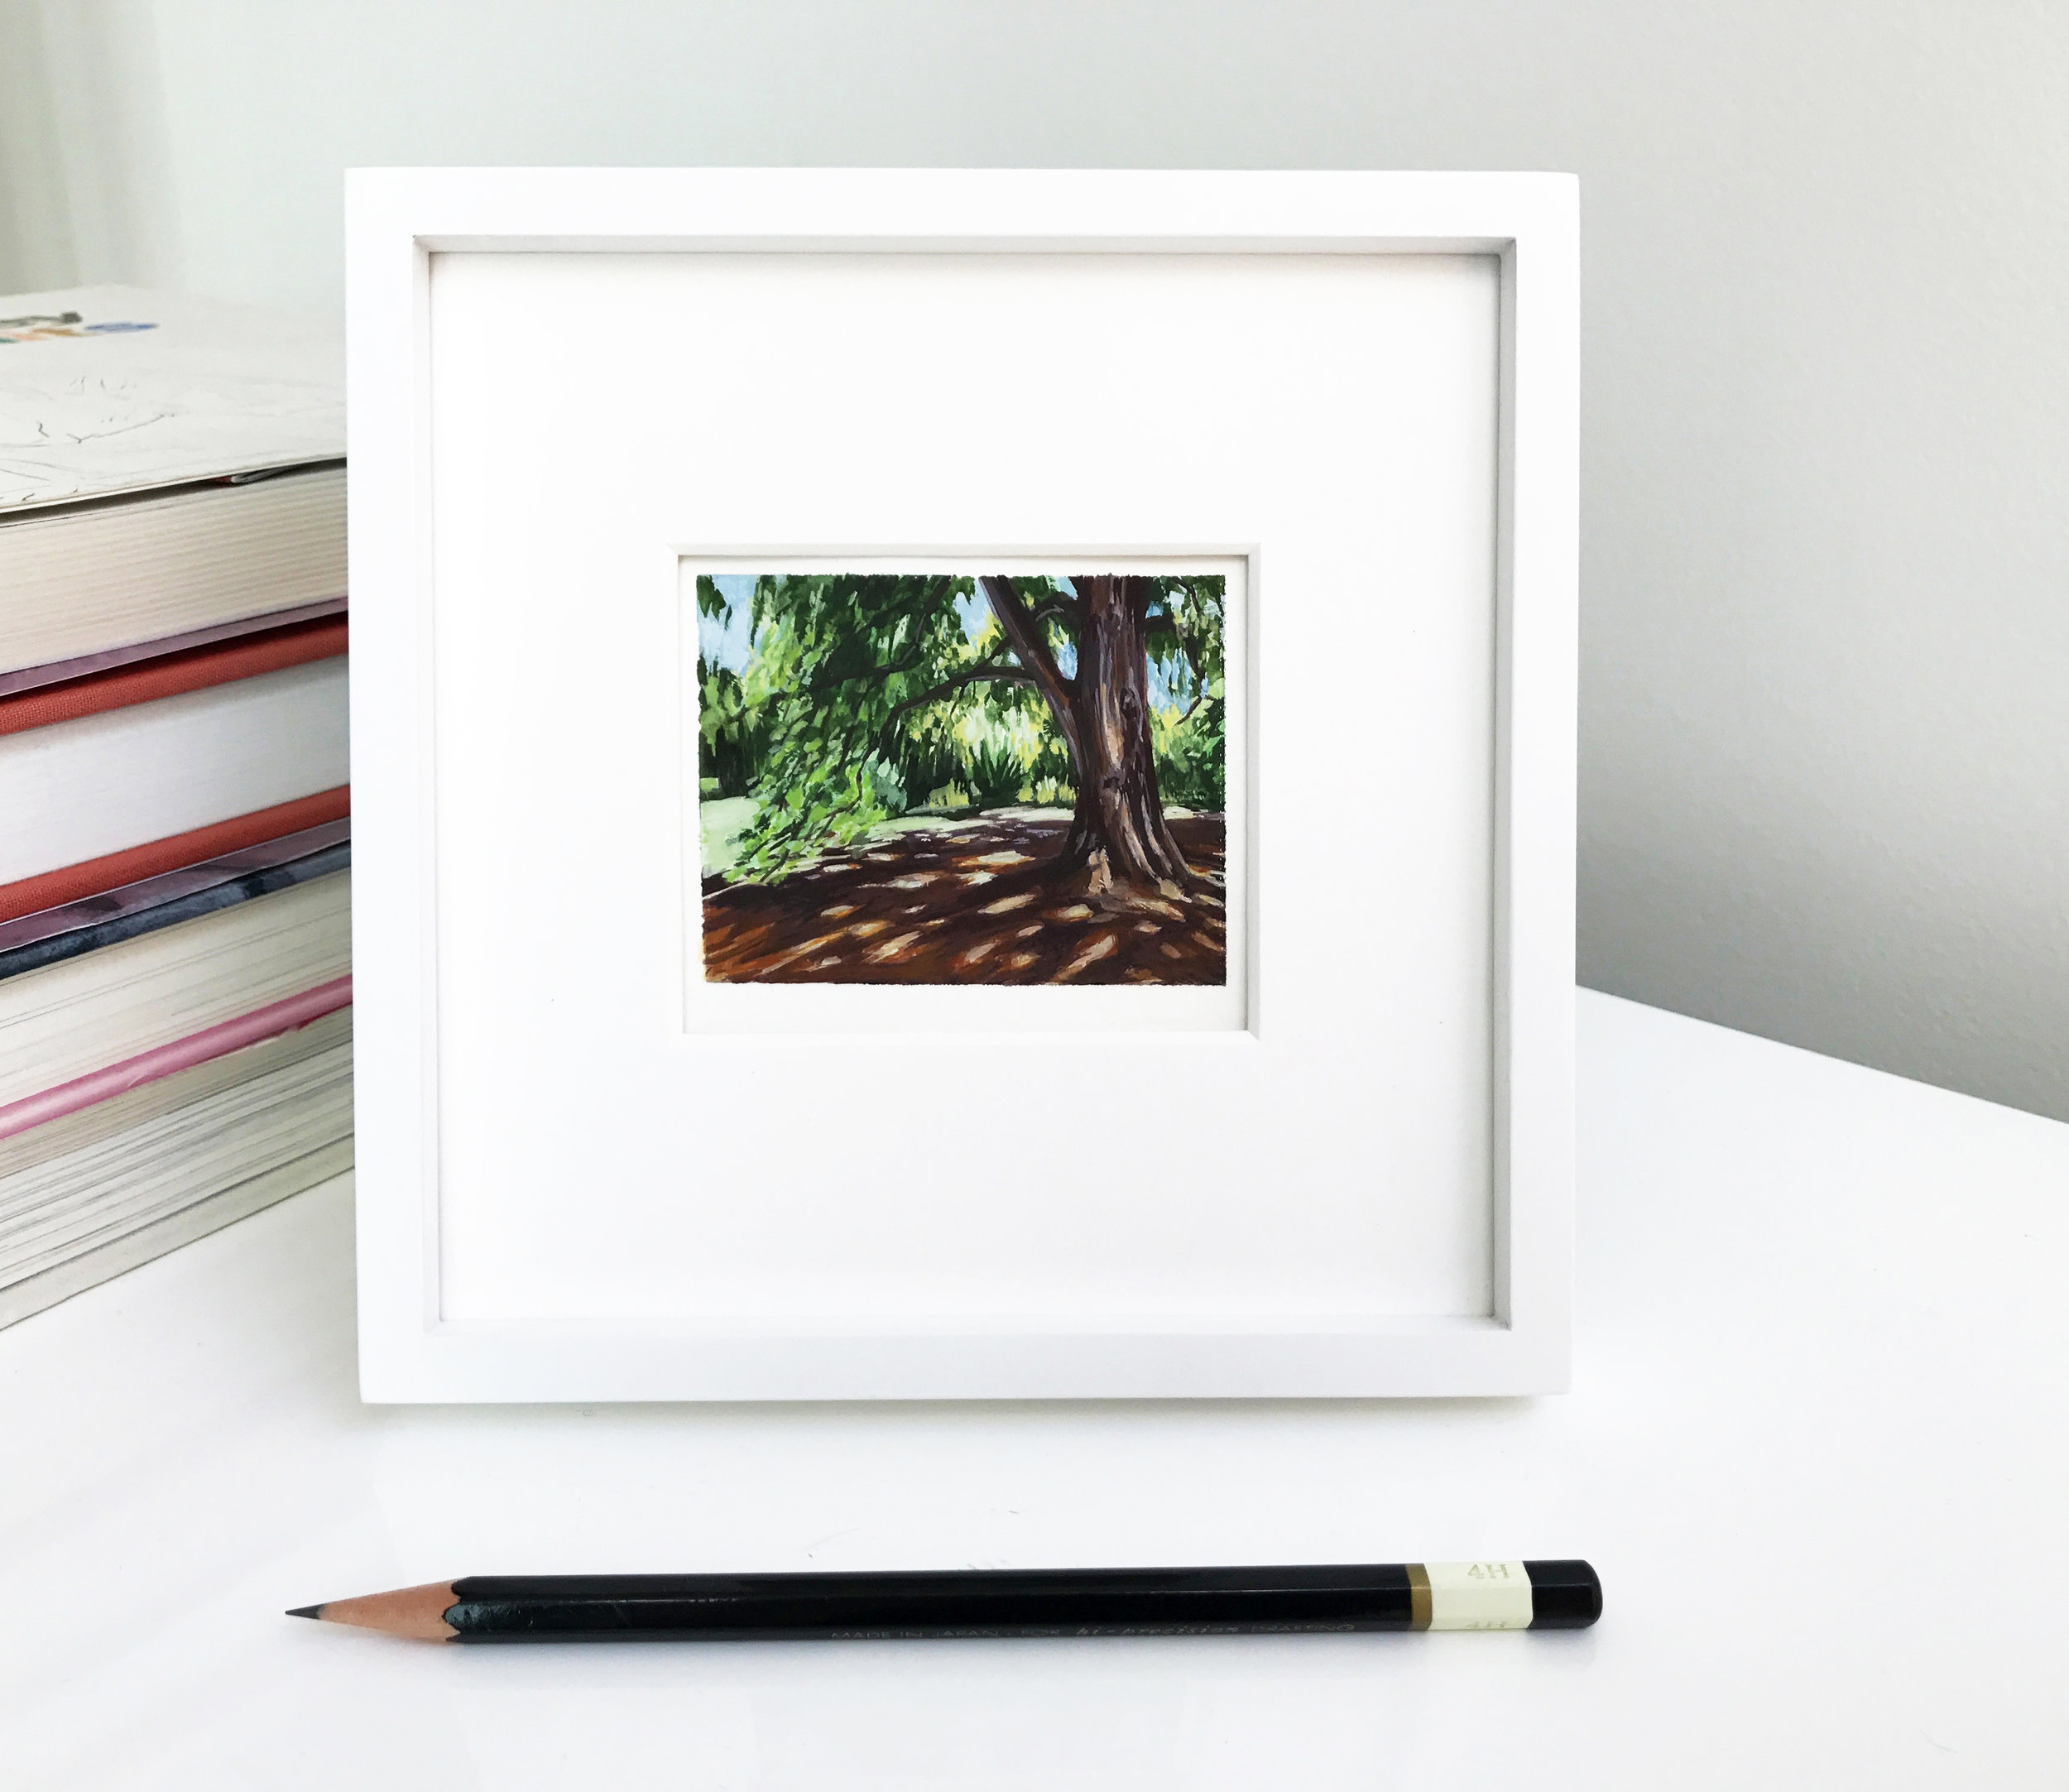 My Small paintings tiny art miniature framed watercolour plein air painting of shady tree with dappled sunlight shadows sunny Huntington Gardens summer